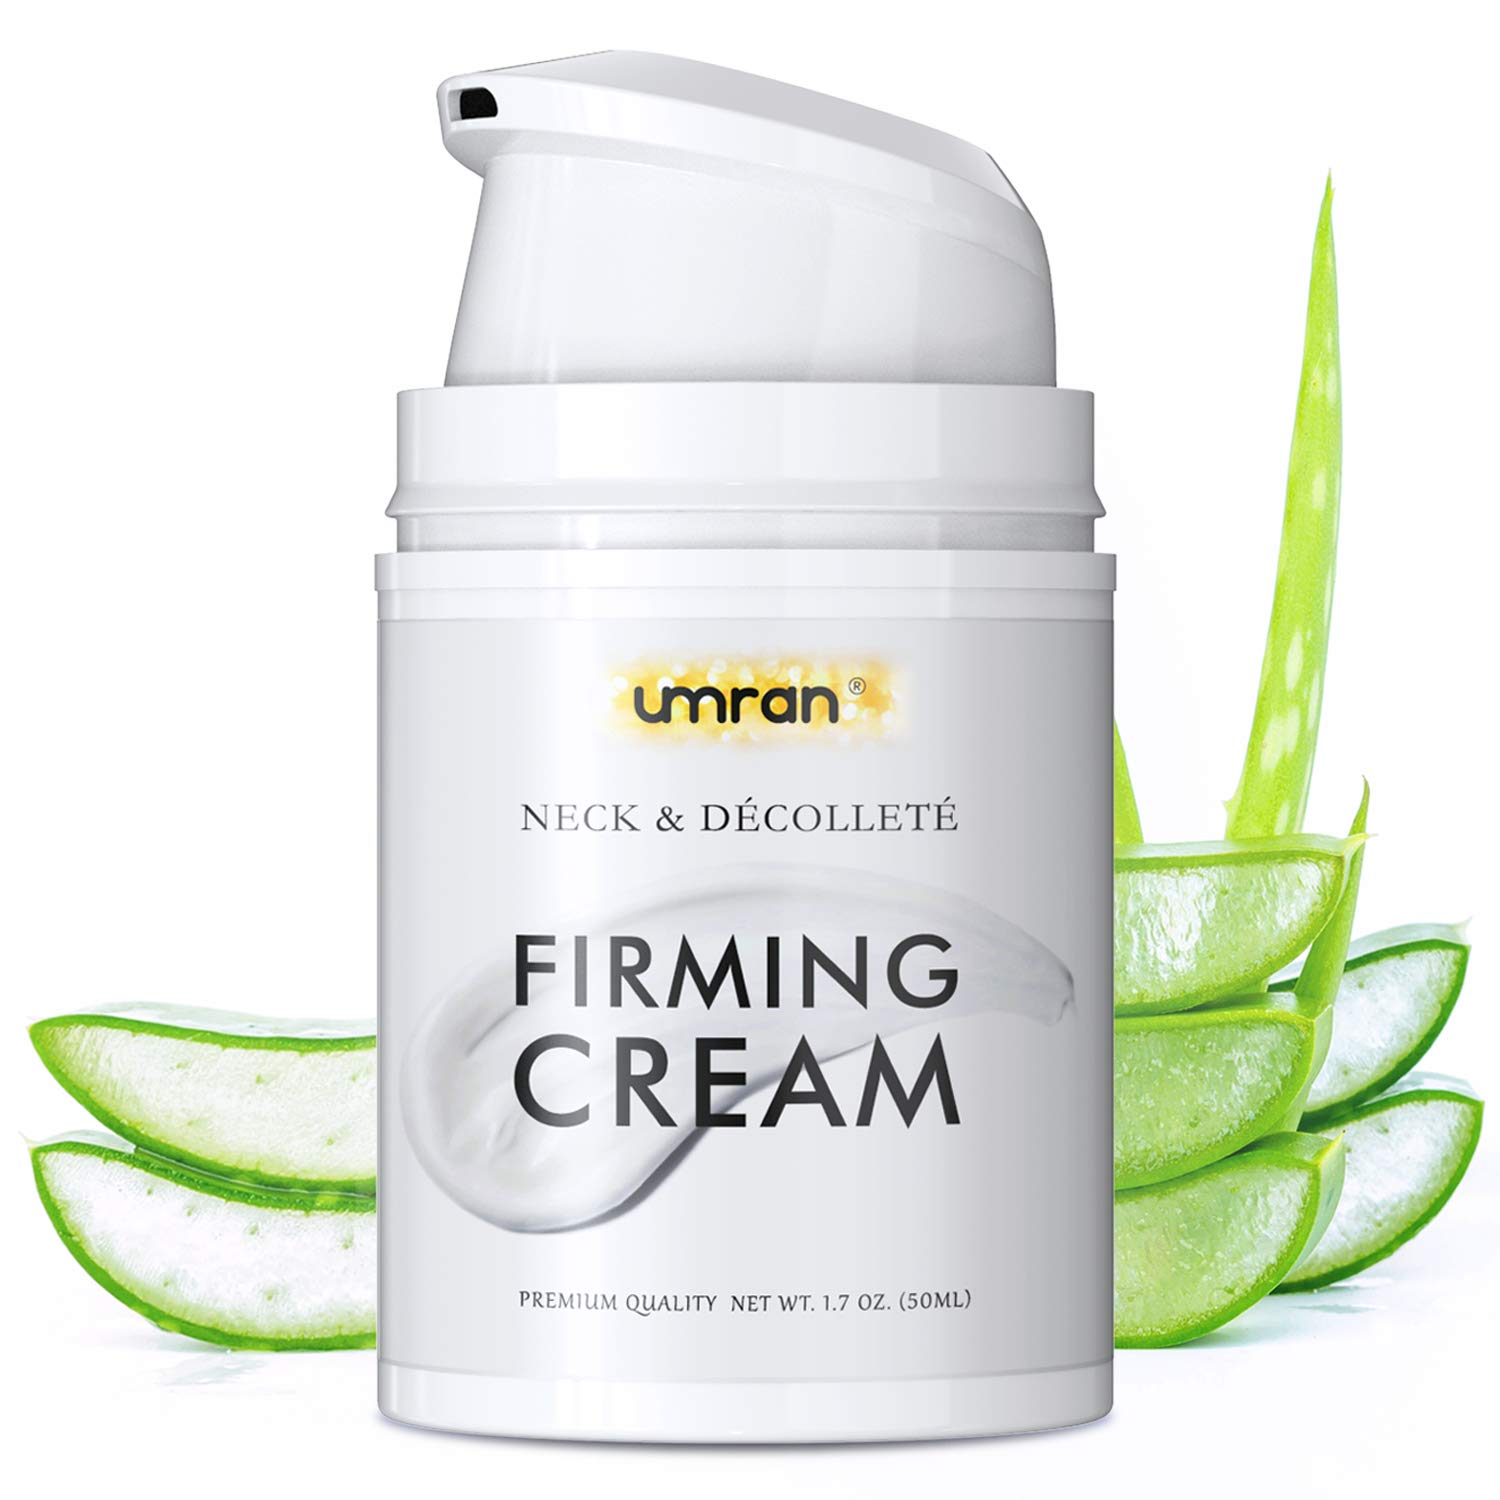 Neck Firming Night Cream For Tightening Lifting Sagging Skin, UMRAN Crepe Neck & Chest Firming Cream, Reducing Wrinkles and Tightening Skin, Anti Aging Moisturizer for Neck & Décolleté, Turkey Neck Firming Cream with Natural Collagen, Aloe Vera, Skin Repair Treatment: Beauty